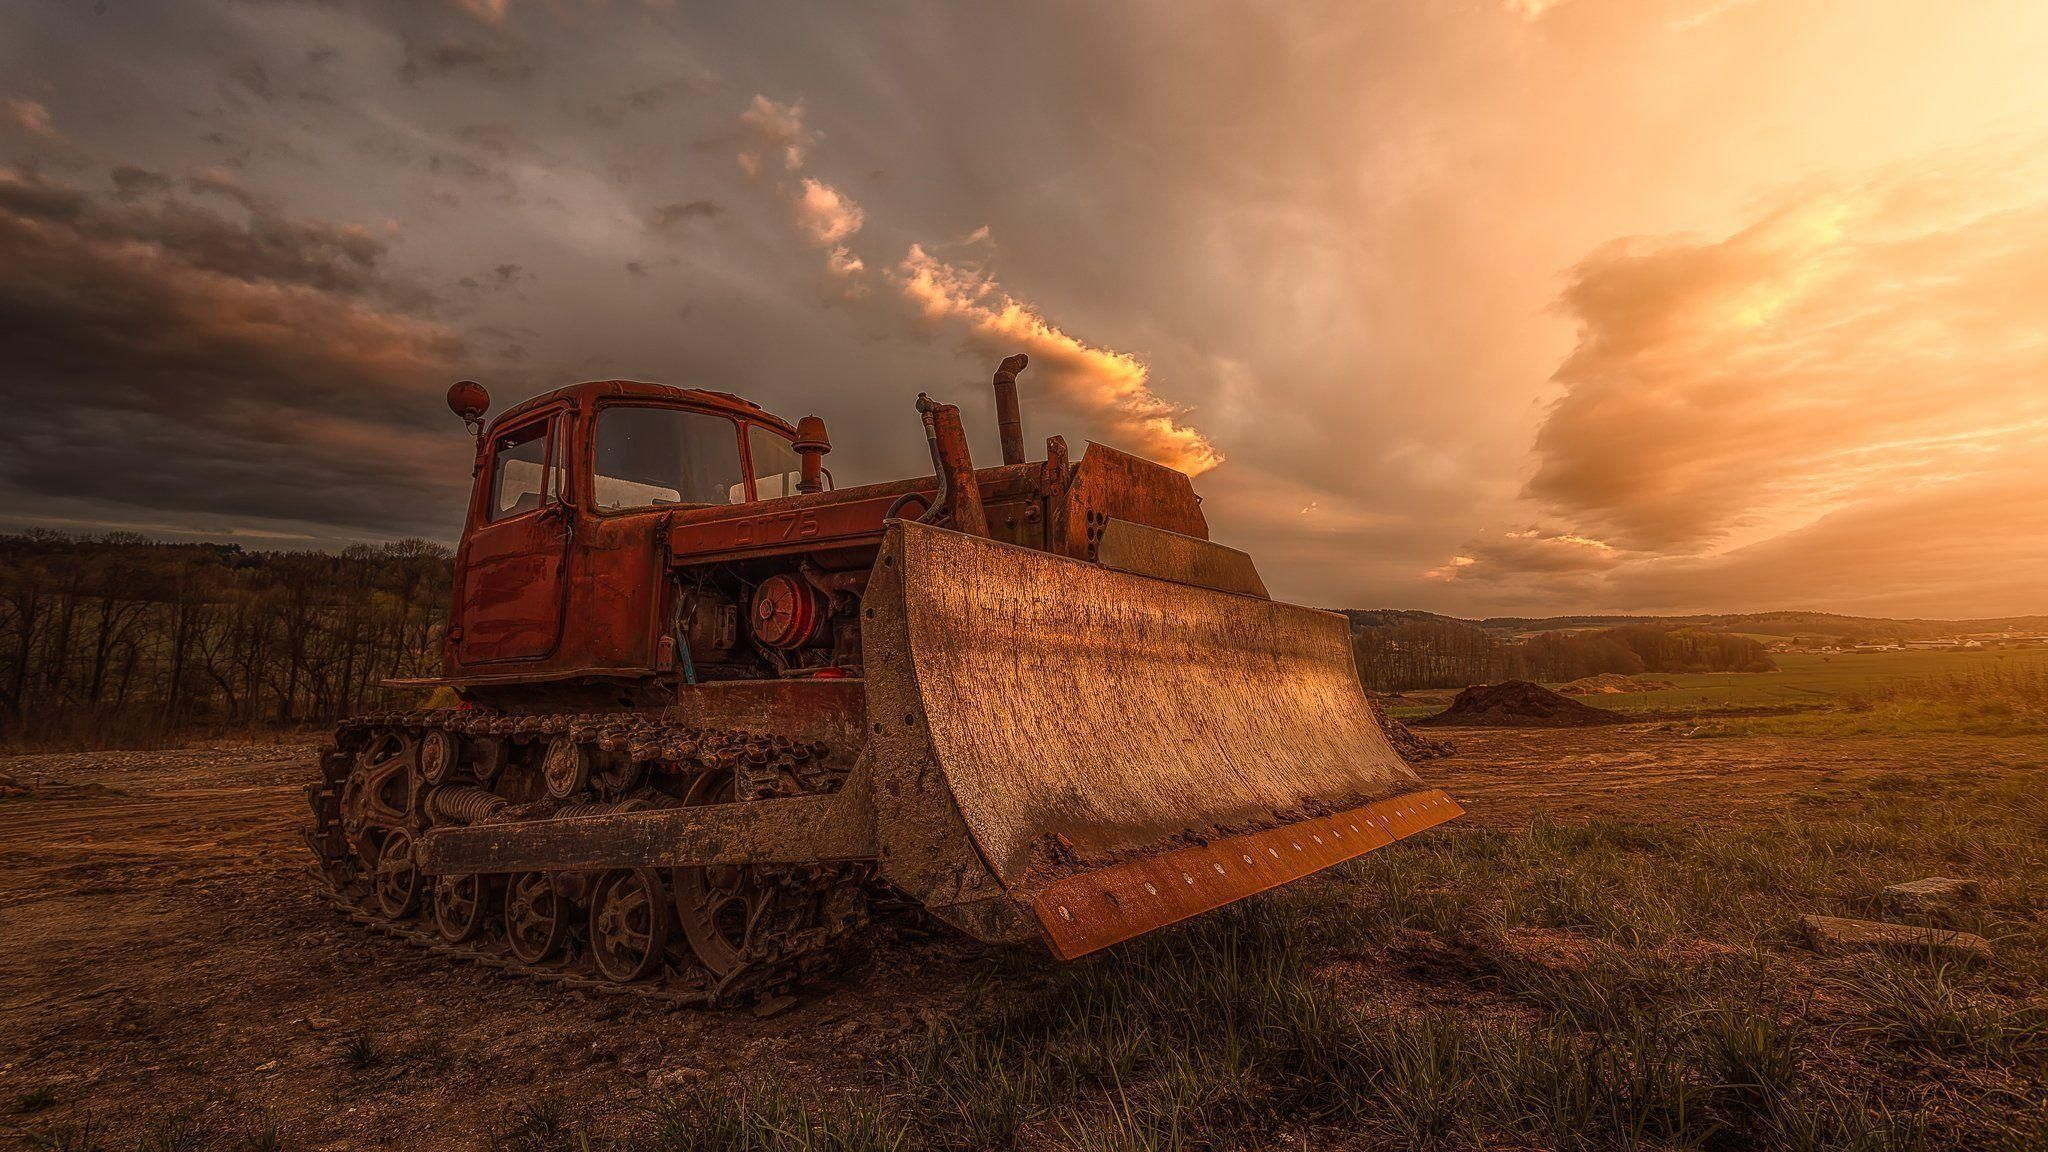 Bulldozer HD Wallpaper